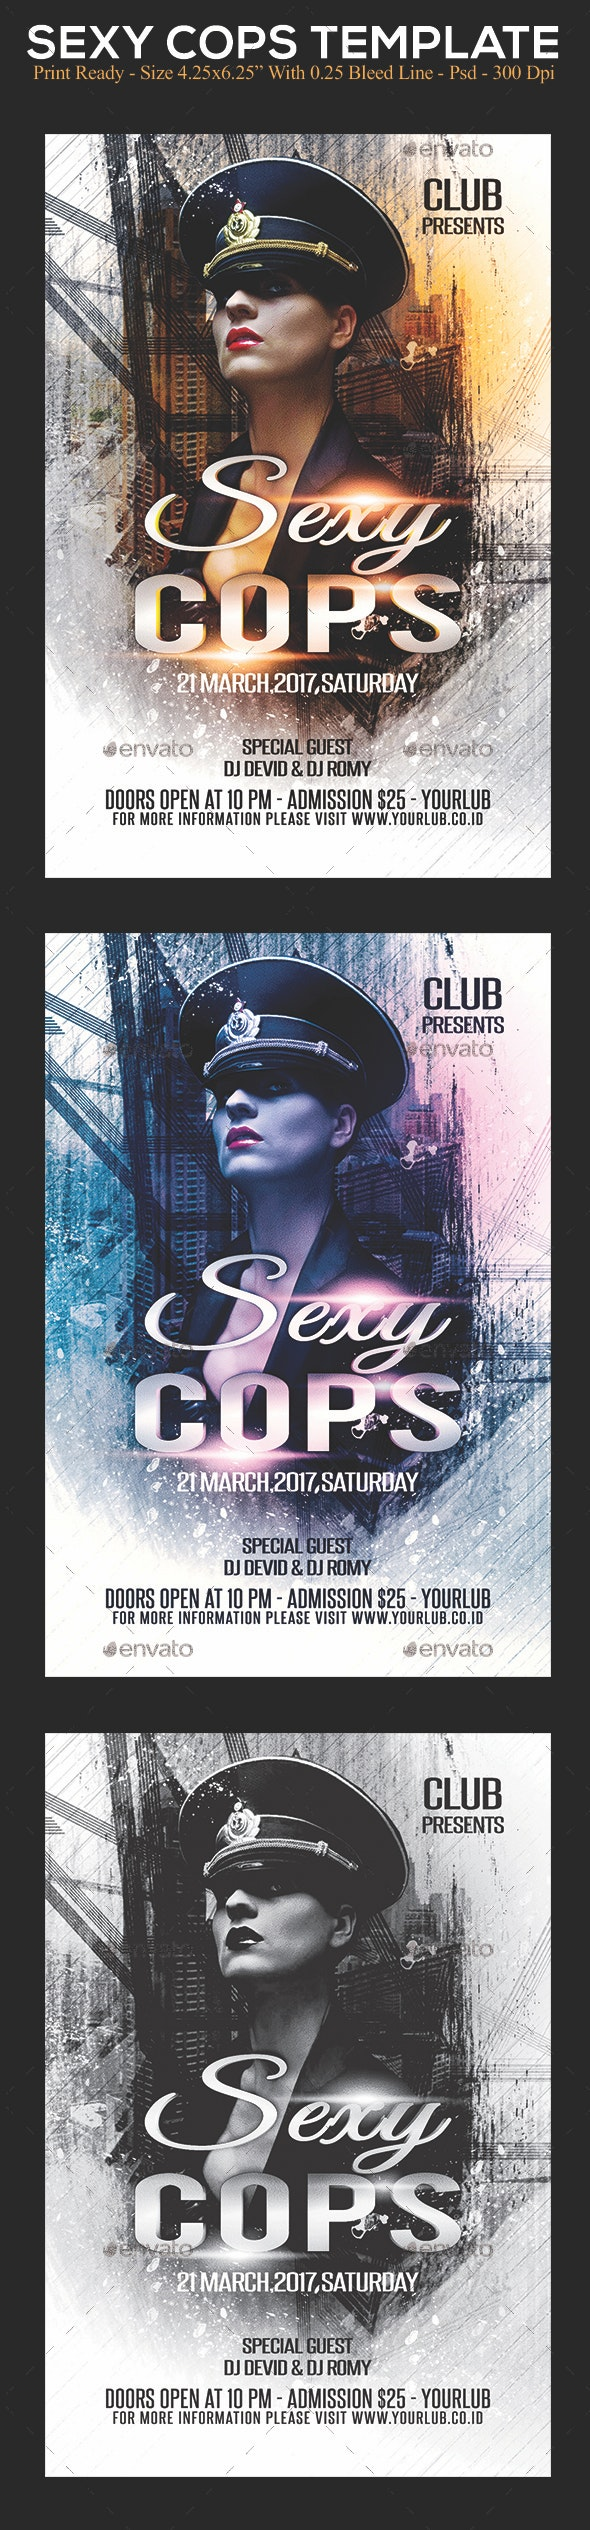 Sexy Cops - Clubs & Parties Events